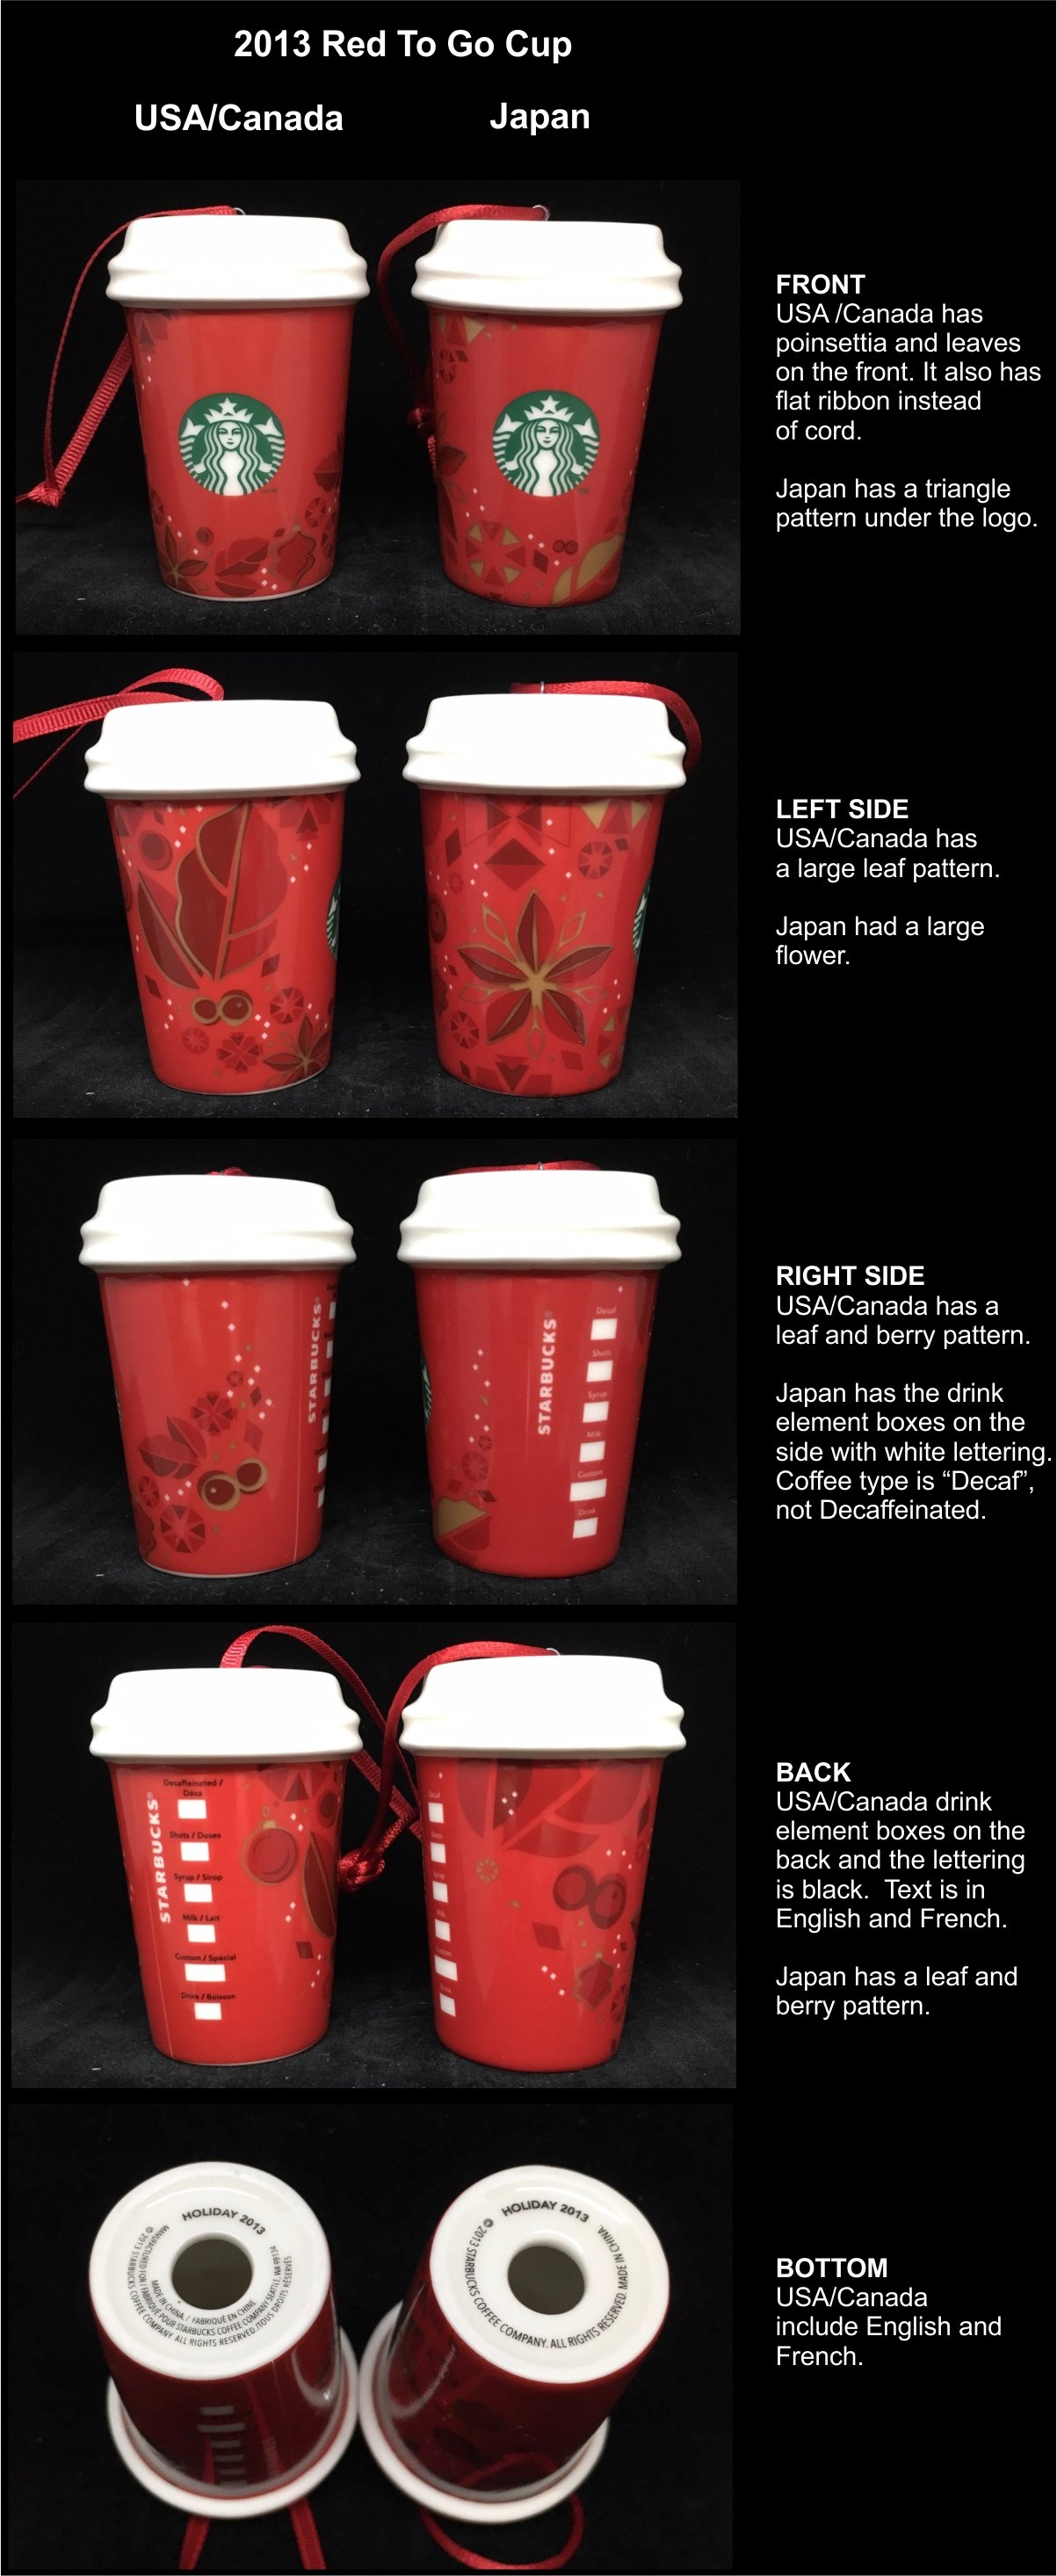 2013 Red To Go Cup Comparison